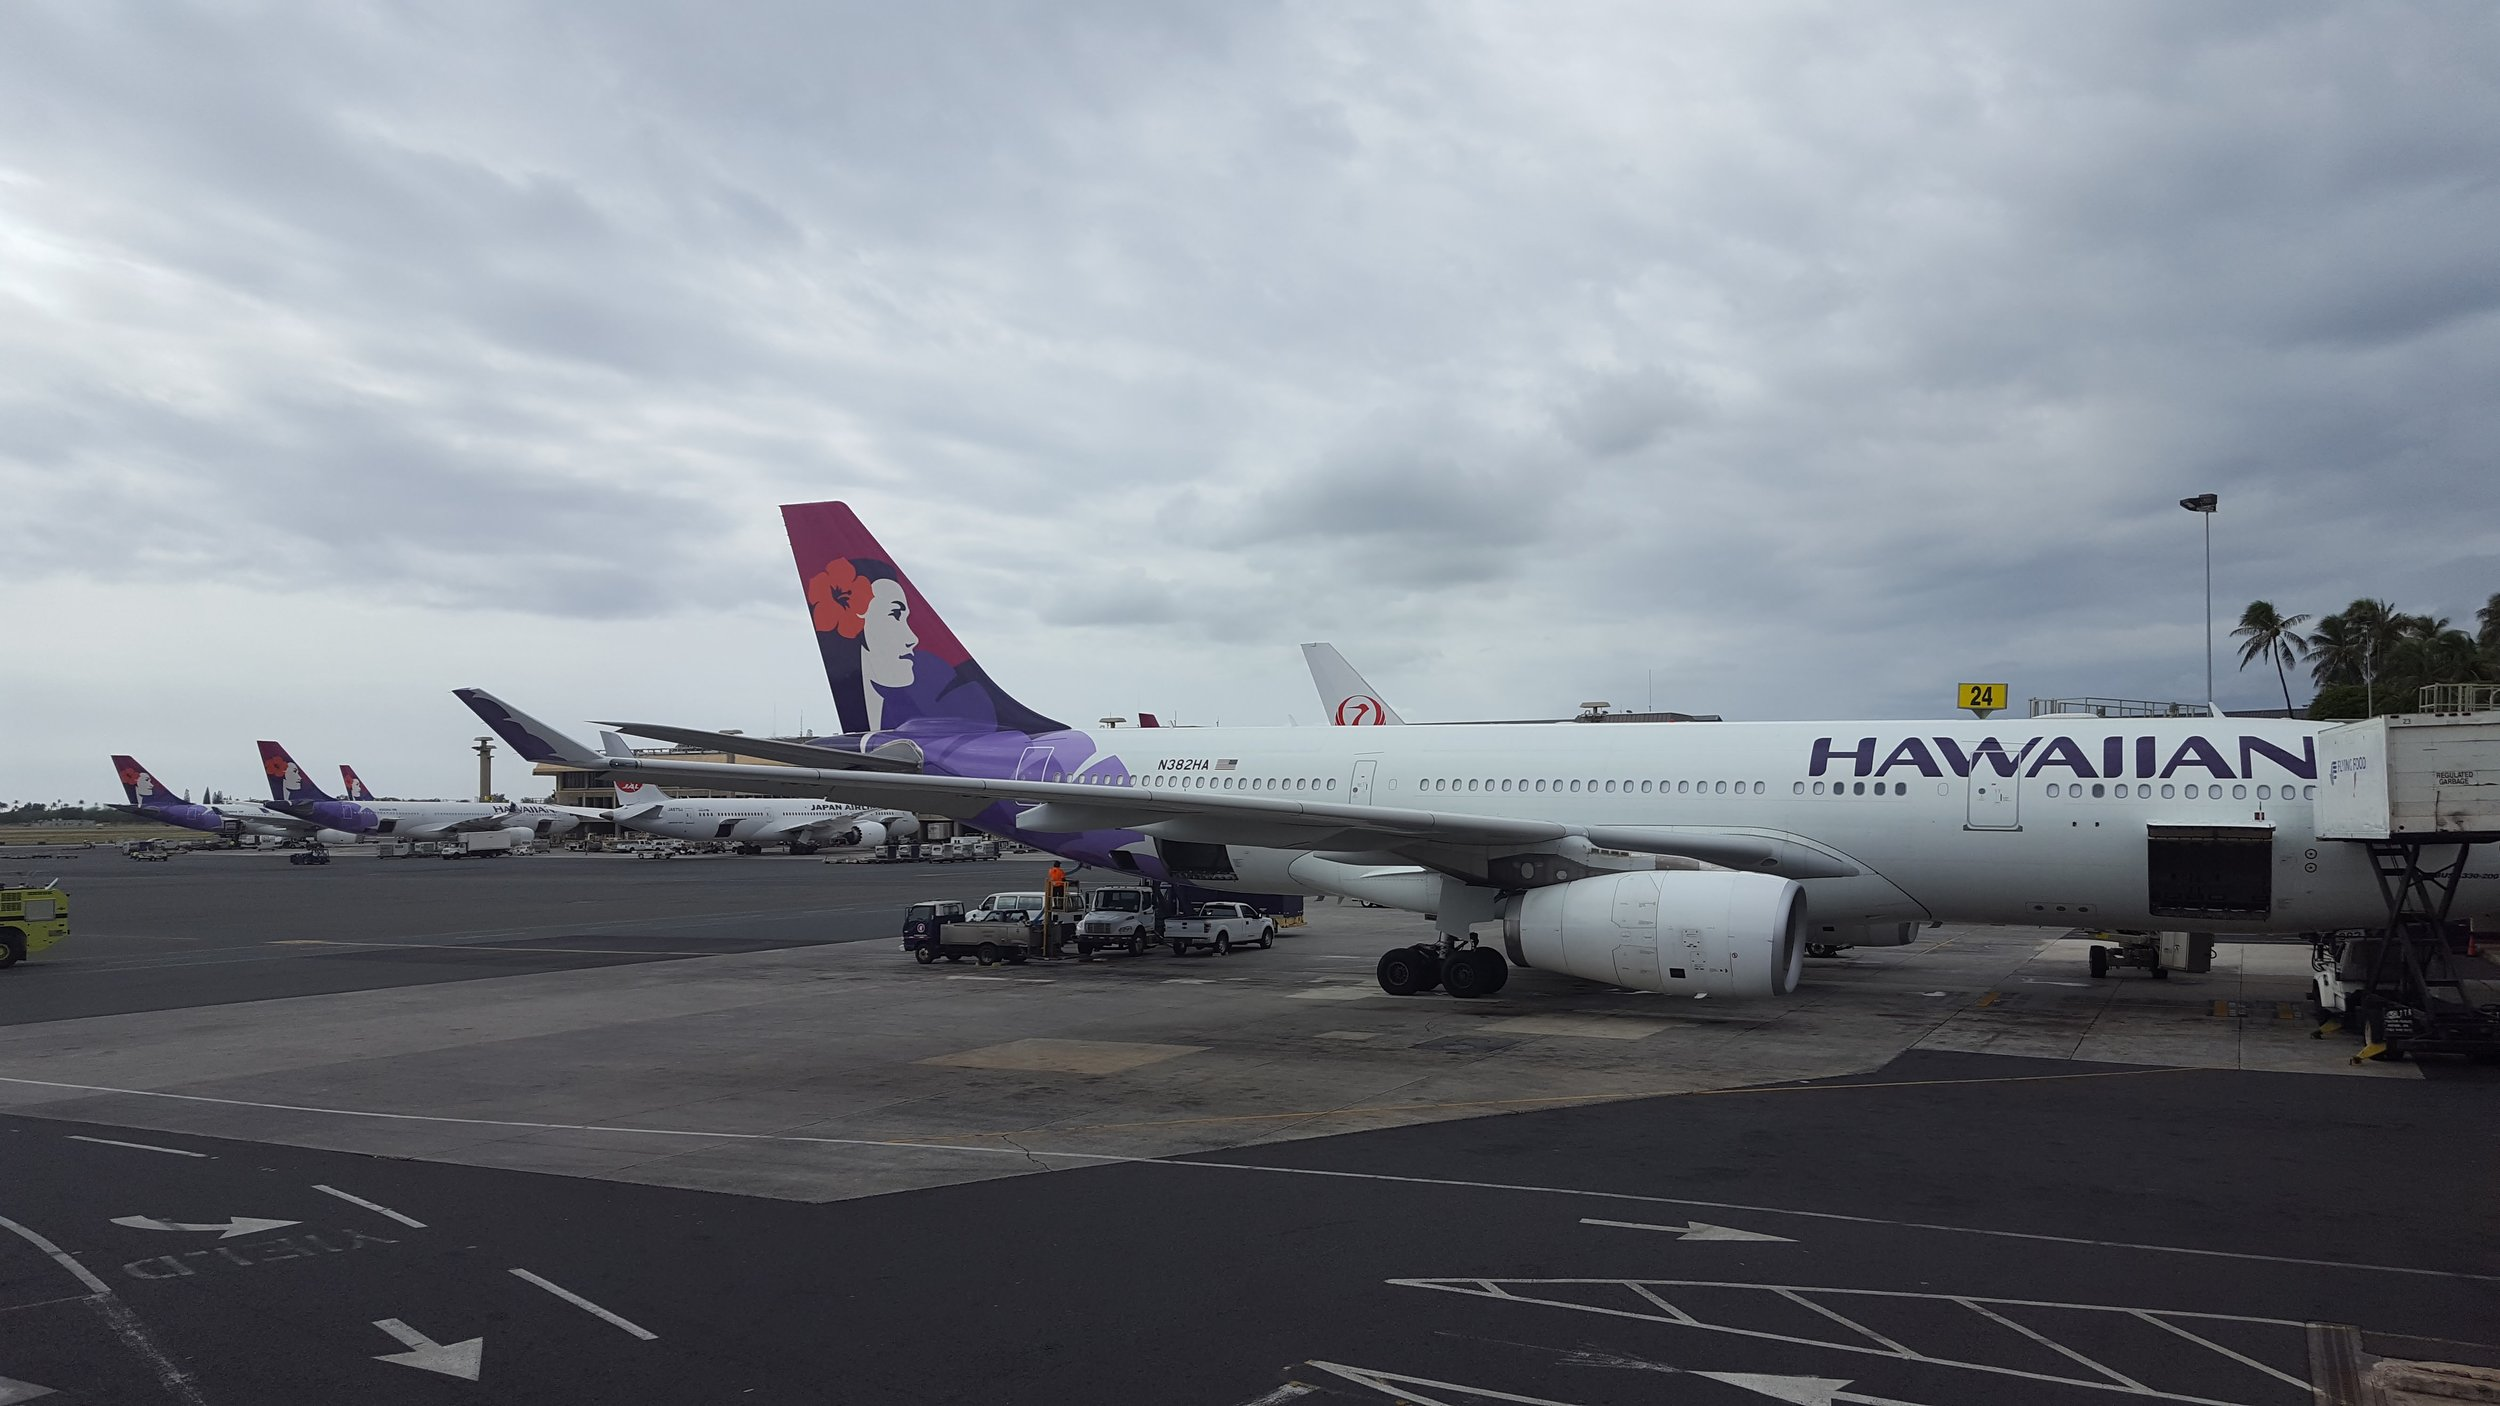 That day we returned to Honolulu Airport twice after takeoff…and this might be our broken plane!